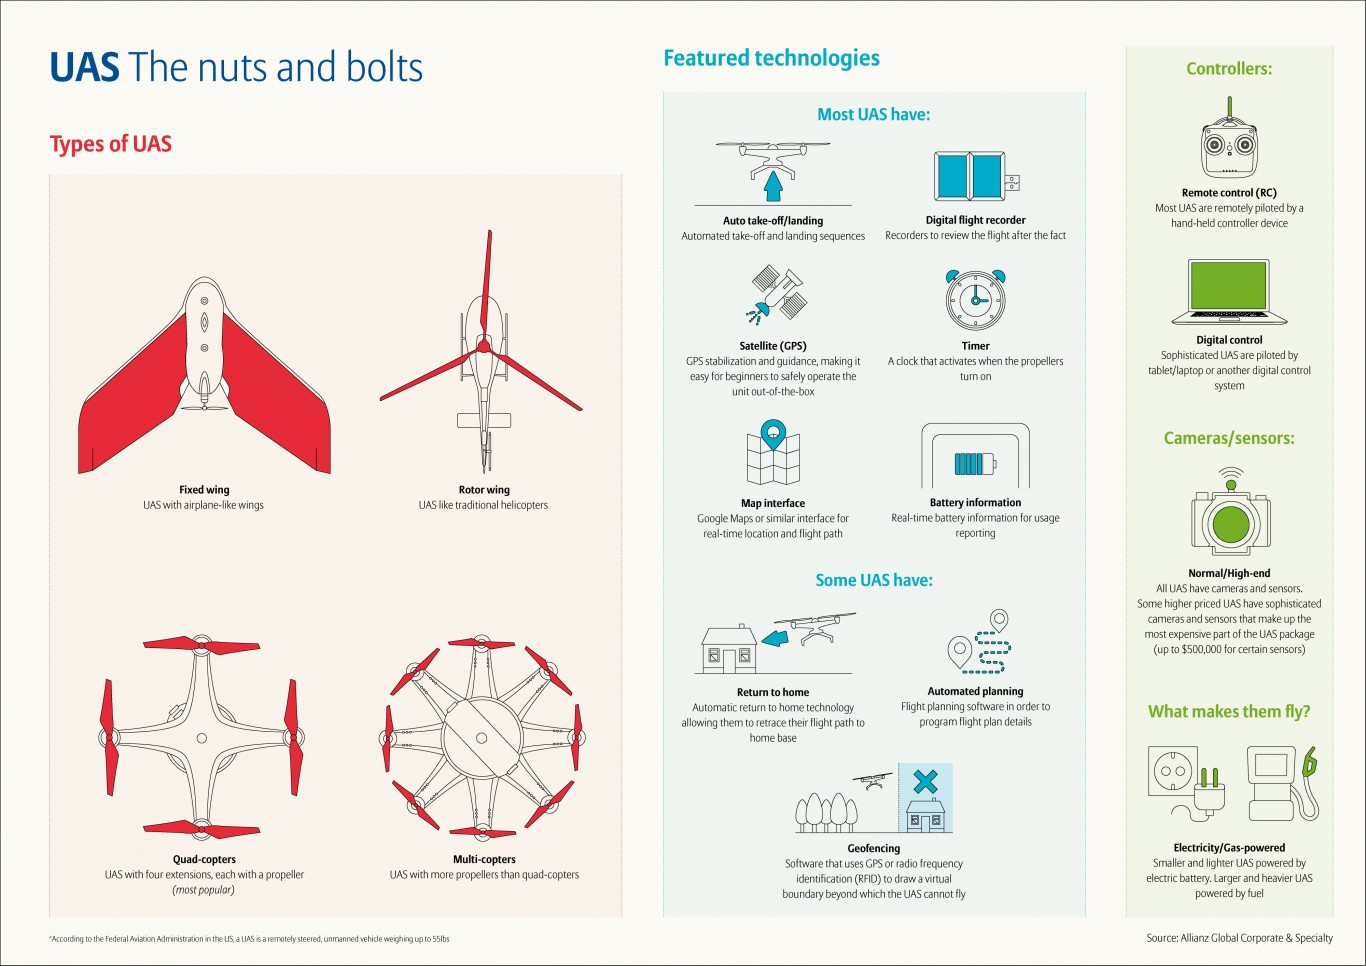 allianz-global-corporate-specialty-drones-and-uas